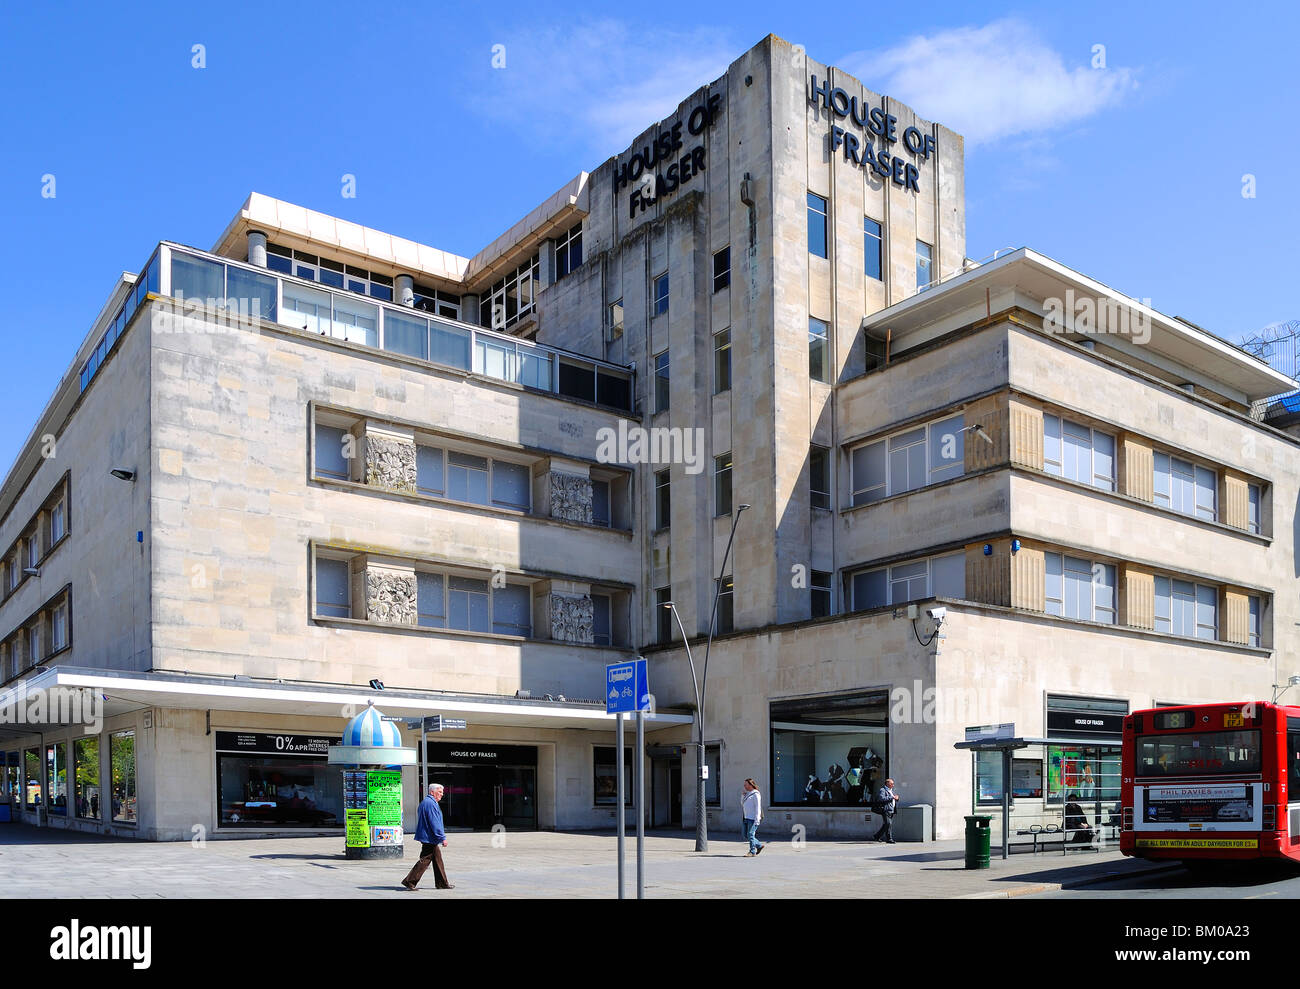 the ' house of fraser ' building in plymouth, devon, uk - Stock Image